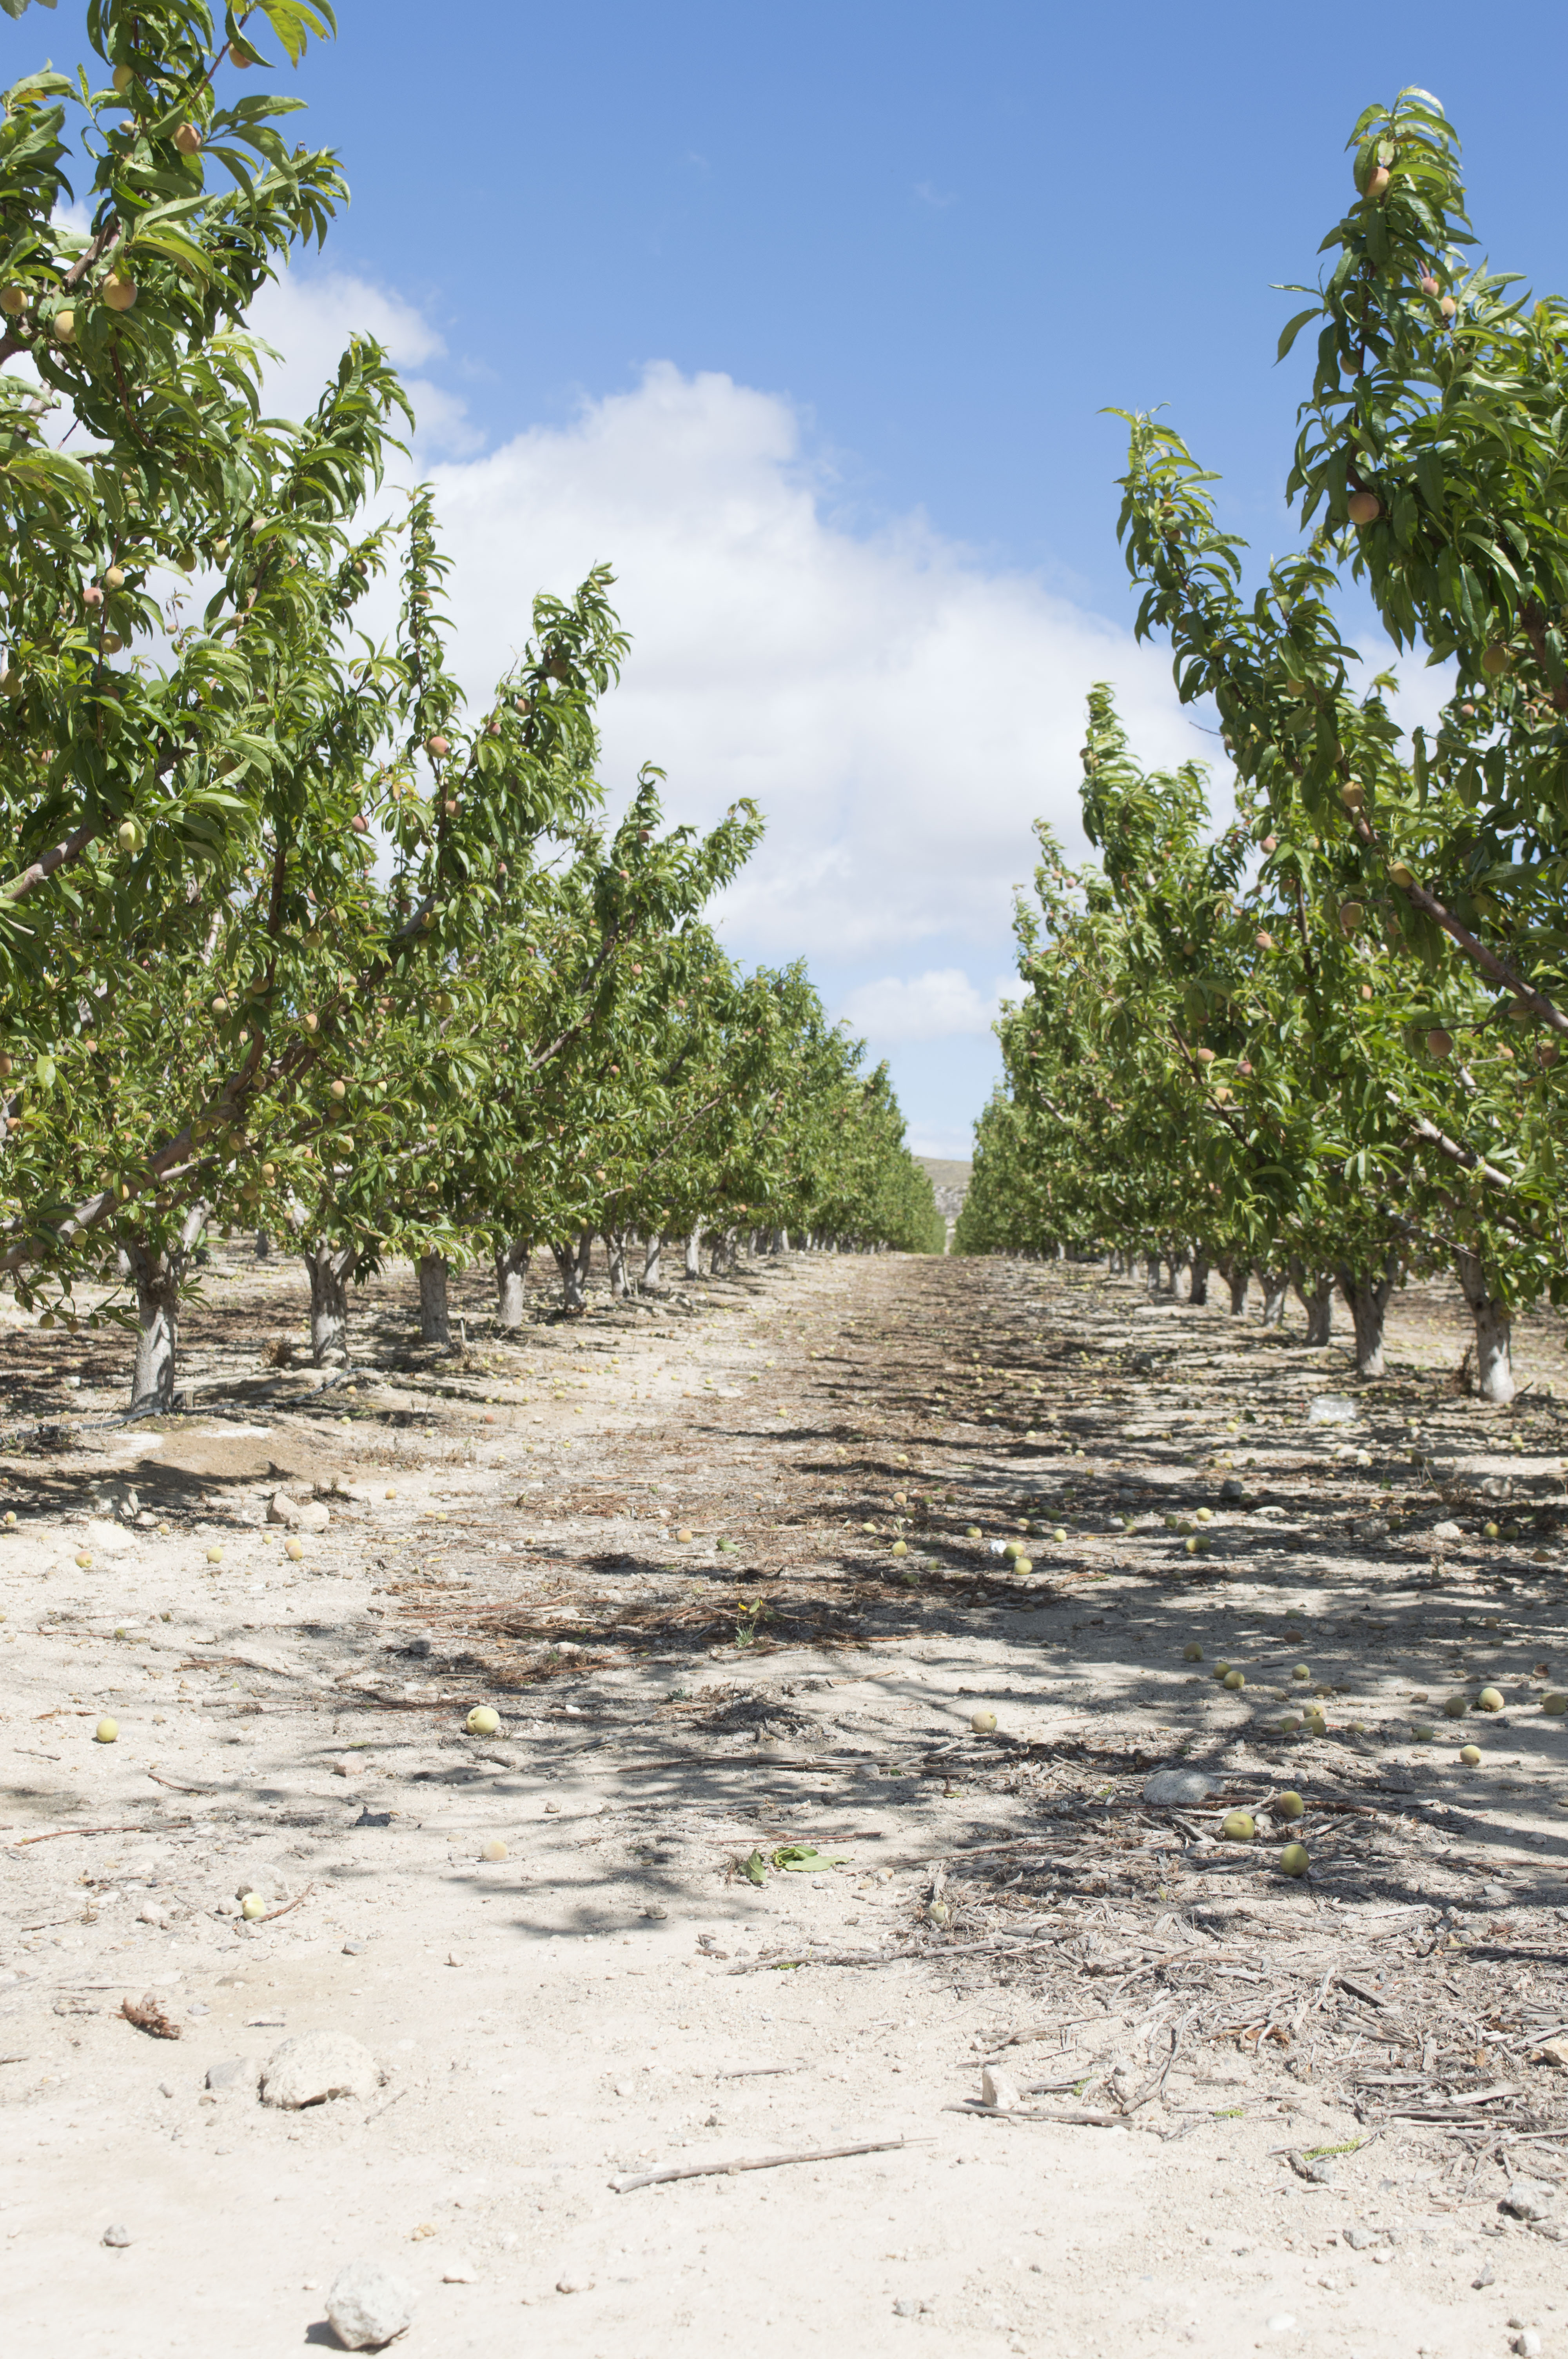 Part of the nectarine plantation and SICS trials on reduced irrigation. Photo credit: Jane Mills